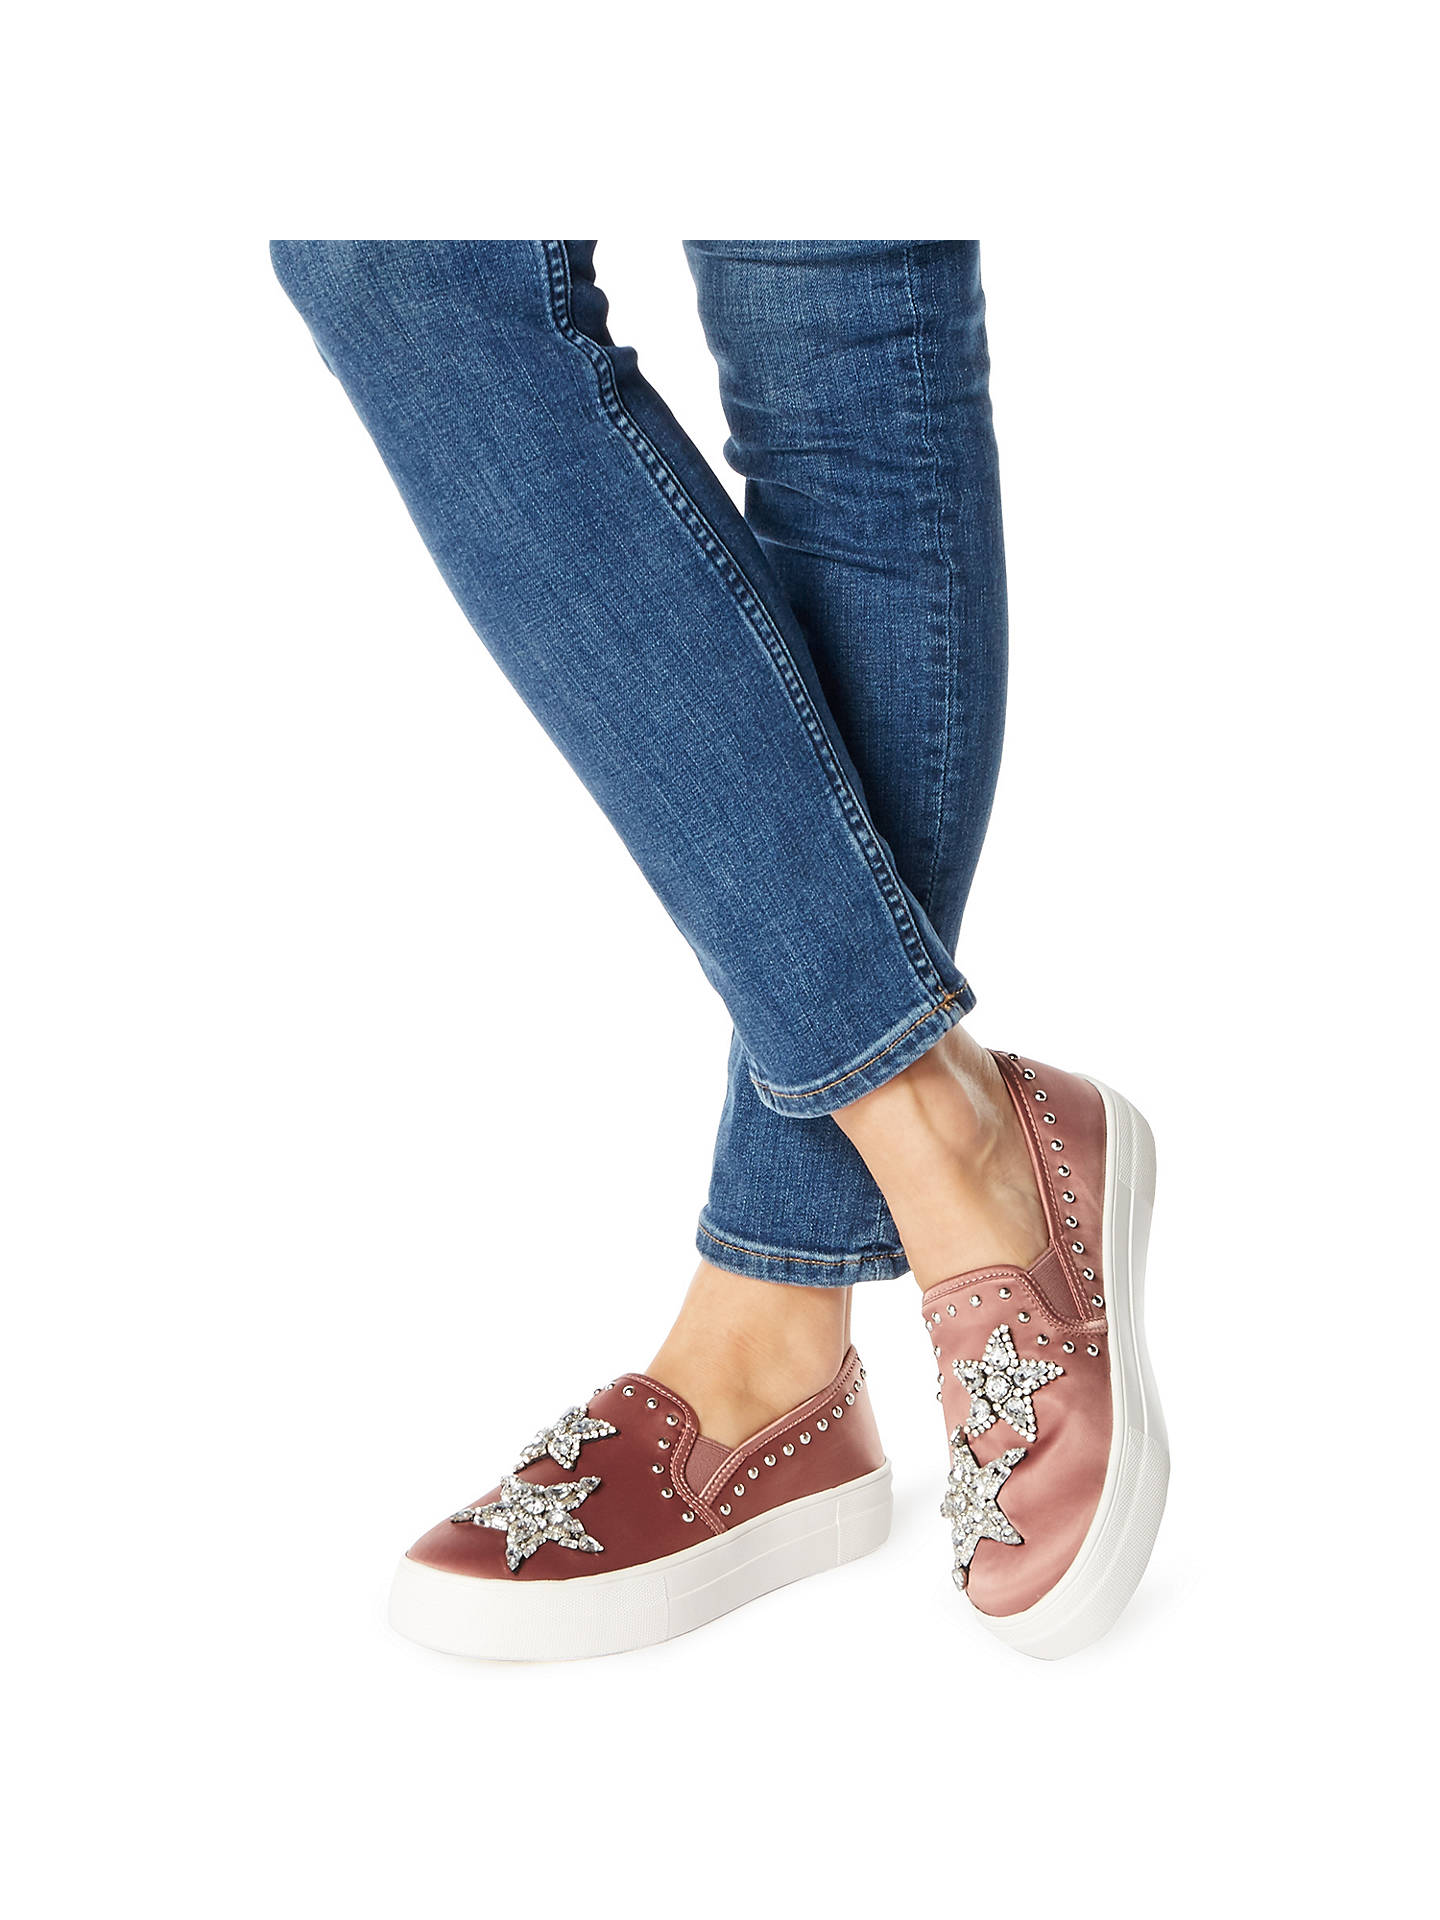 a93134be905 Steve Madden Pluto Embellished Flatform Trainers at John Lewis ...